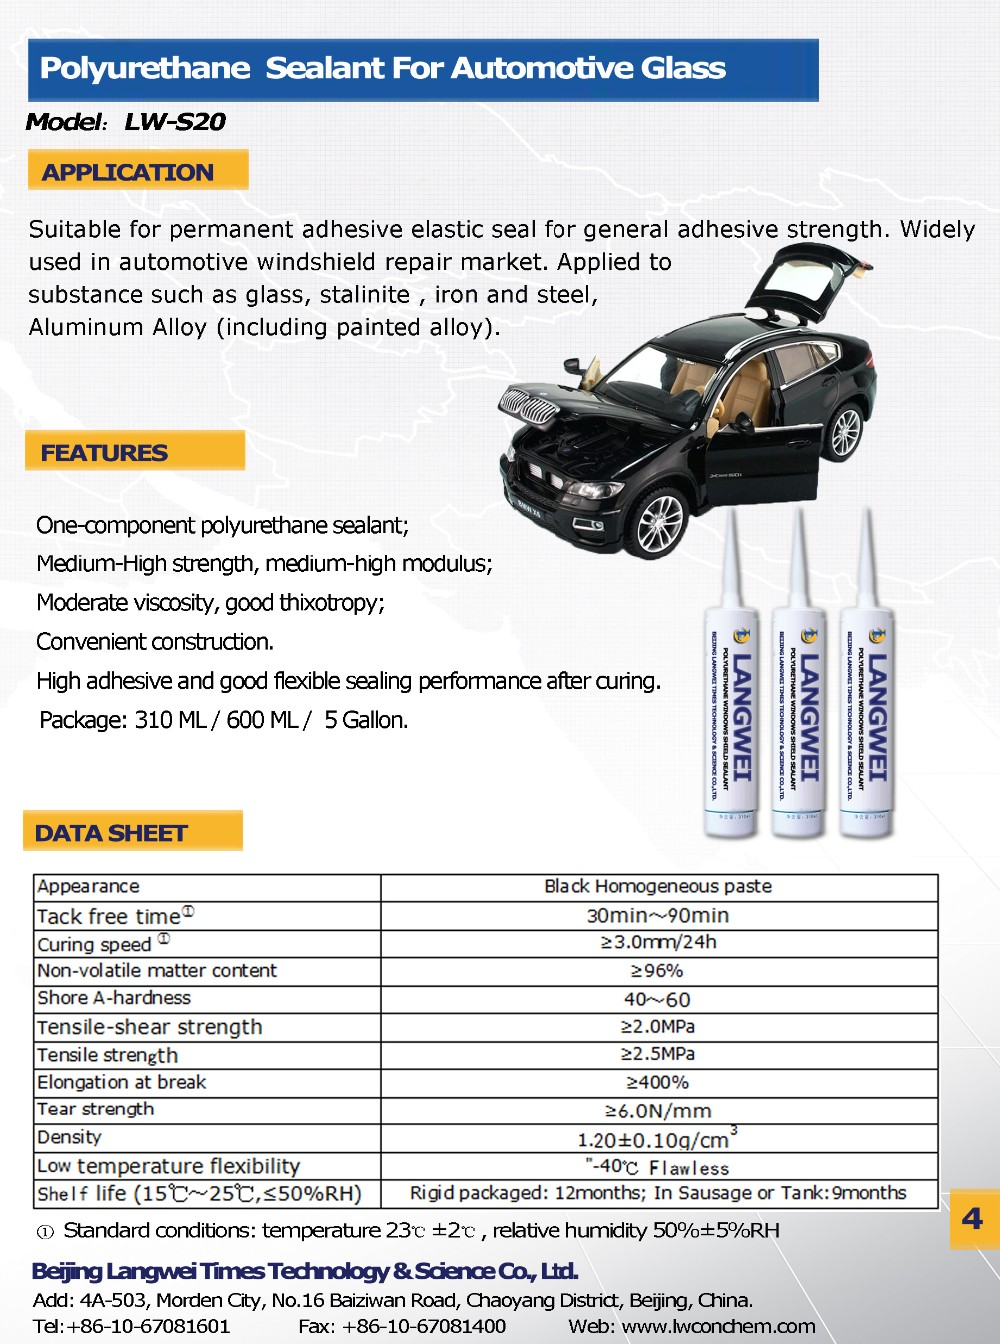 Polyurethane Adhesive Sealant With Competitive Price